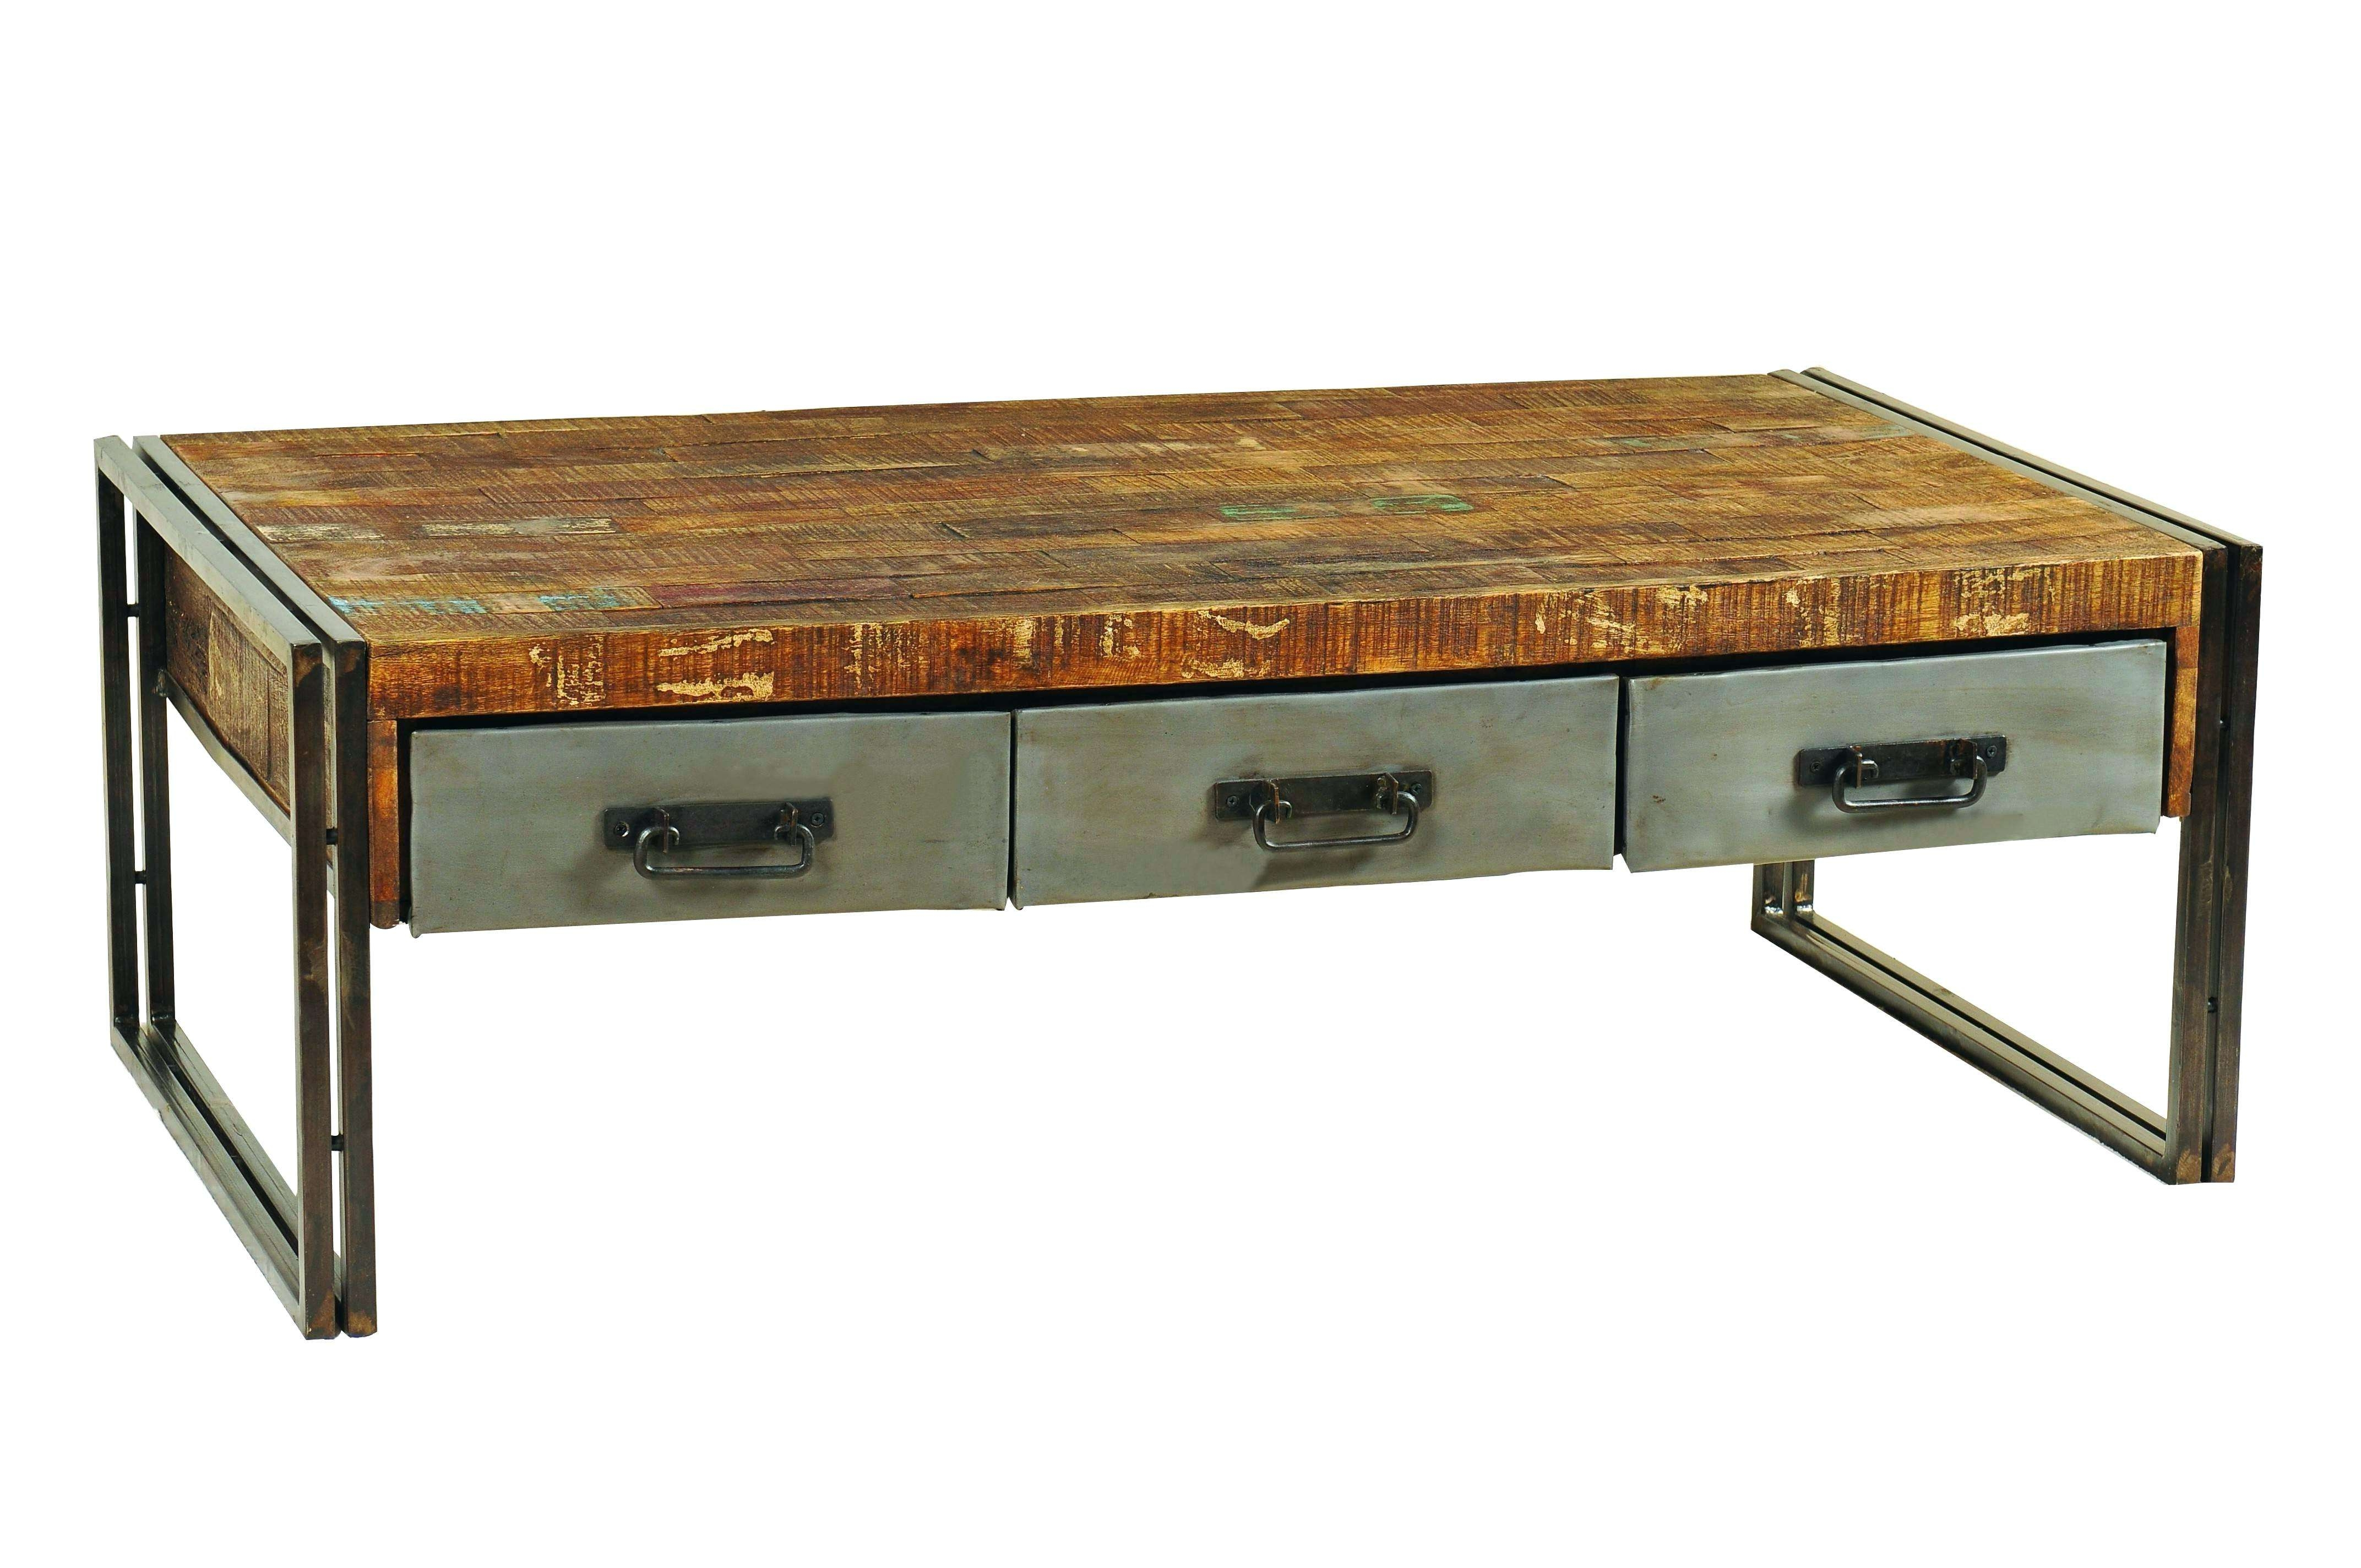 Rustic Wood Metal Coffee Table Industrial Reclaimed Iron Cocktail Intended For Latest Wood And Steel Coffee Table (View 17 of 20)